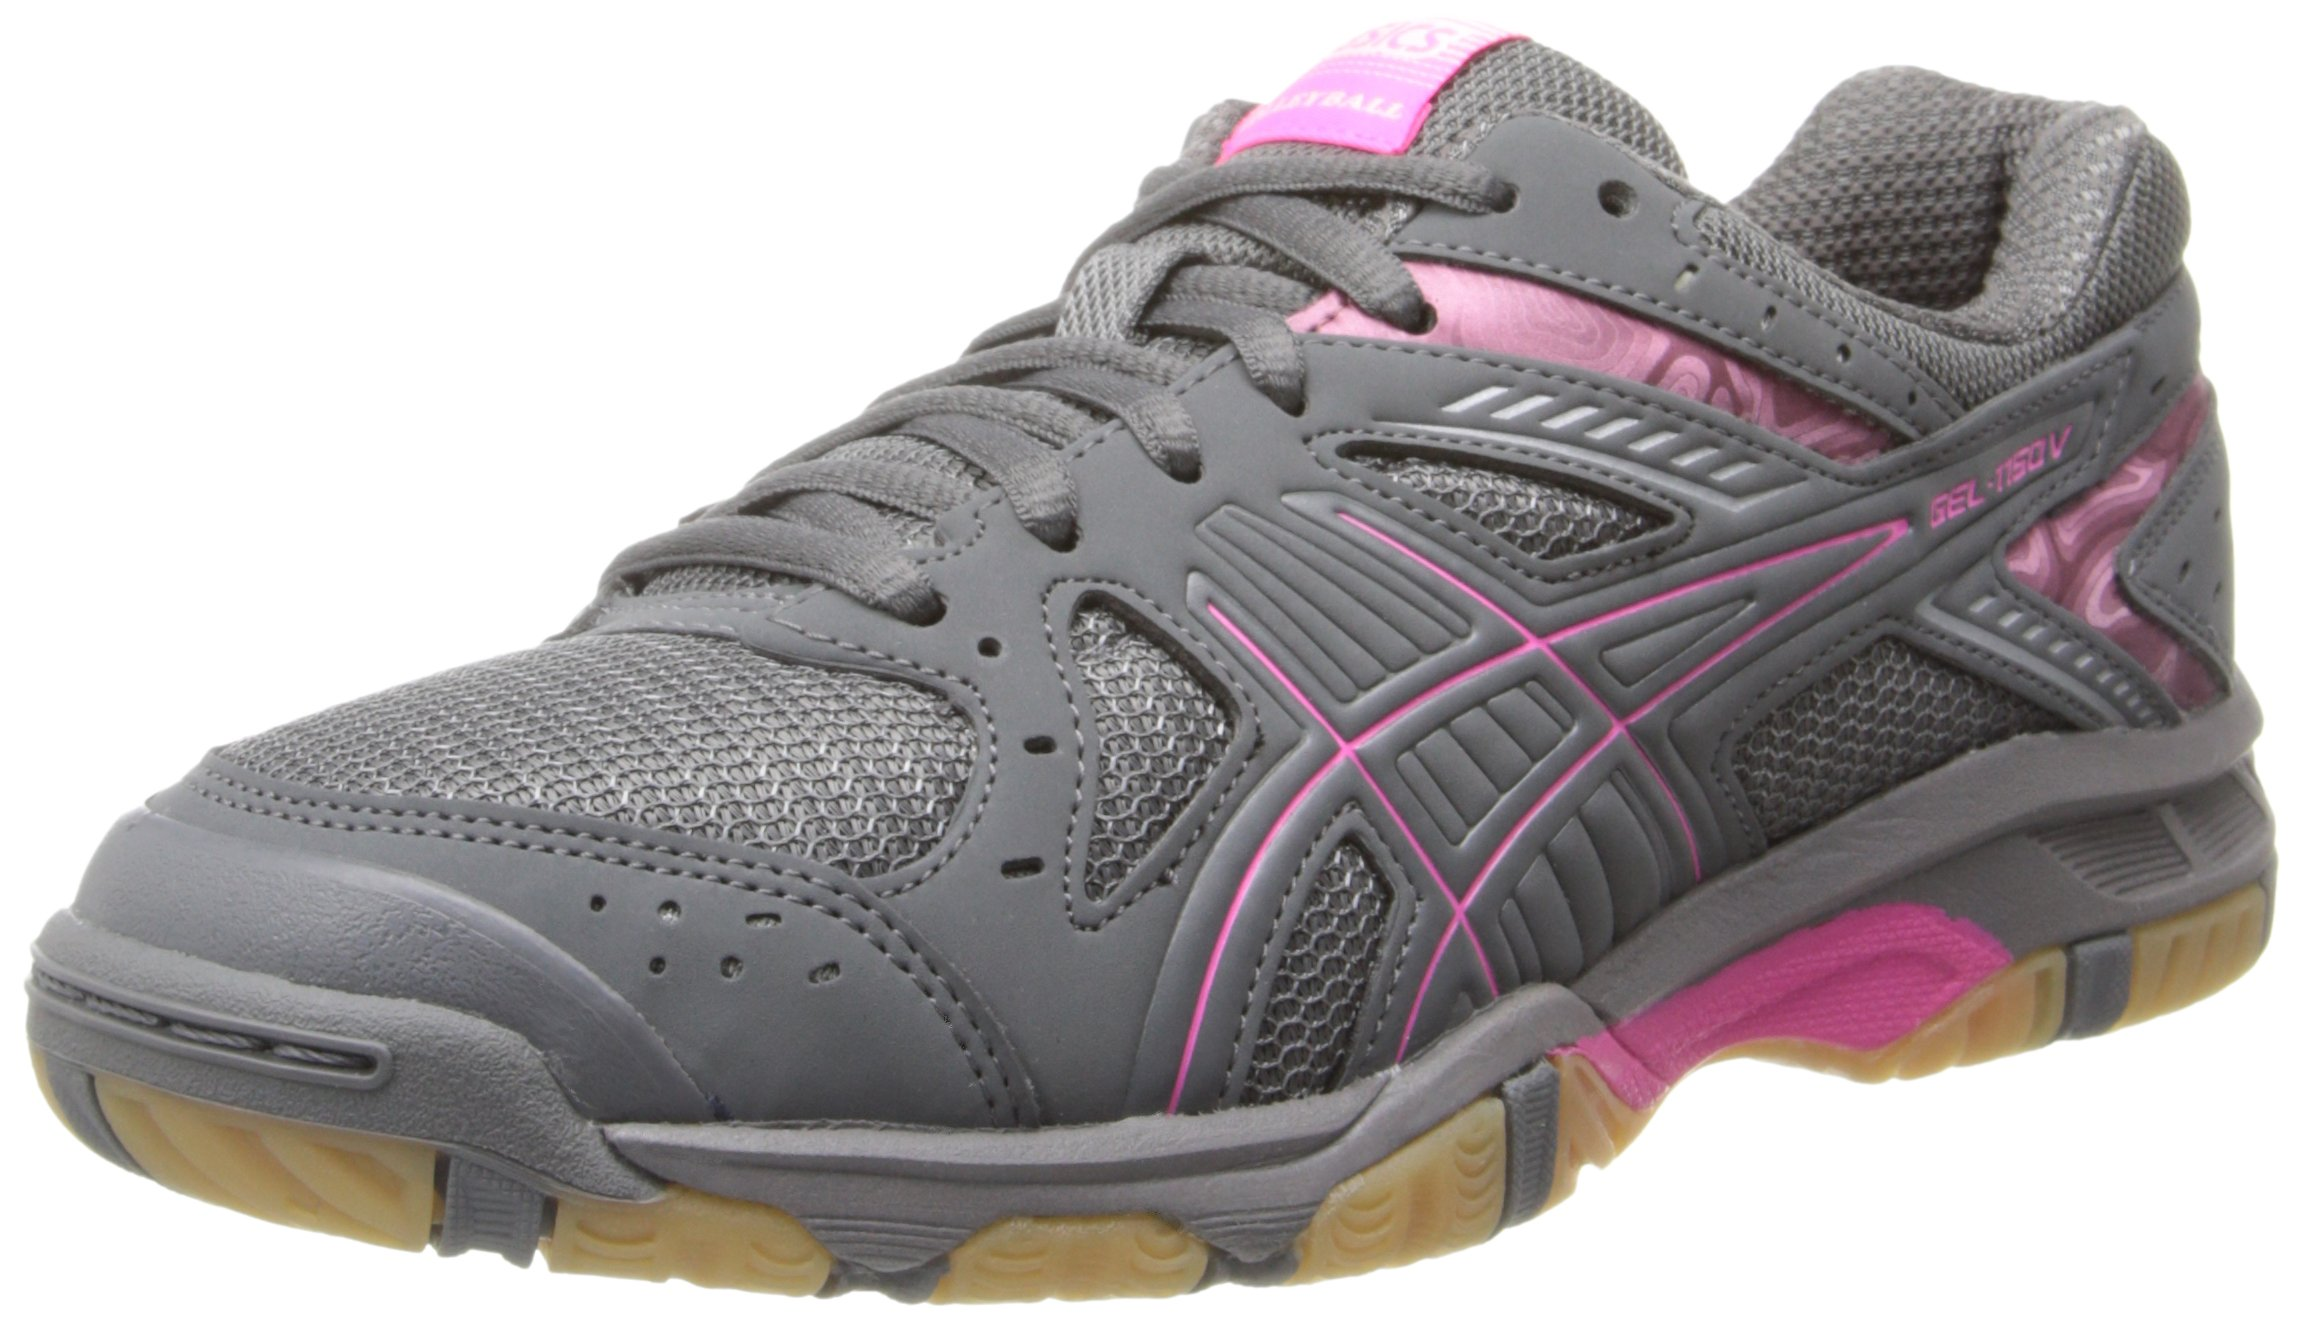 ASICS Women's Gel 1150V Volley Ball Shoe,Smoke/Knock Out Pink/Silver,8 M US